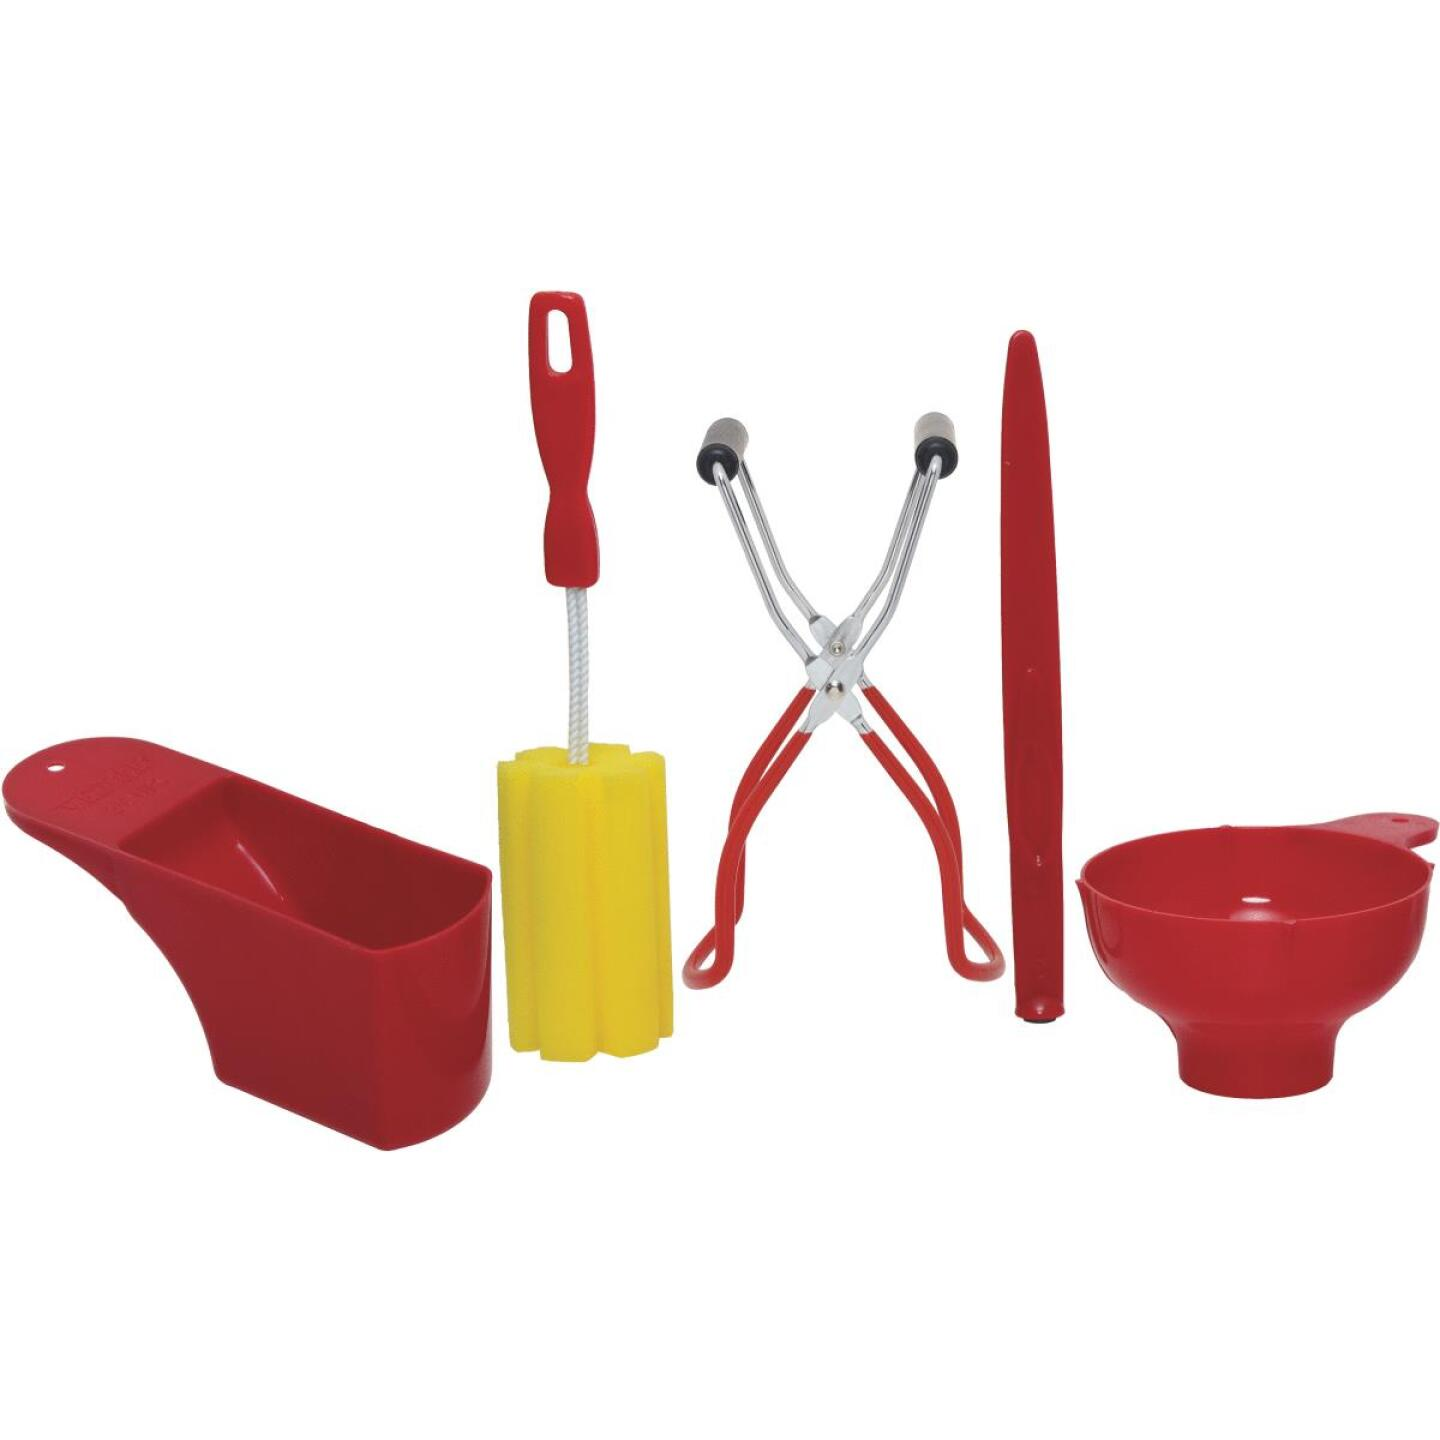 Roots & Branches Canning Utensil Set (5-Piece) Image 1